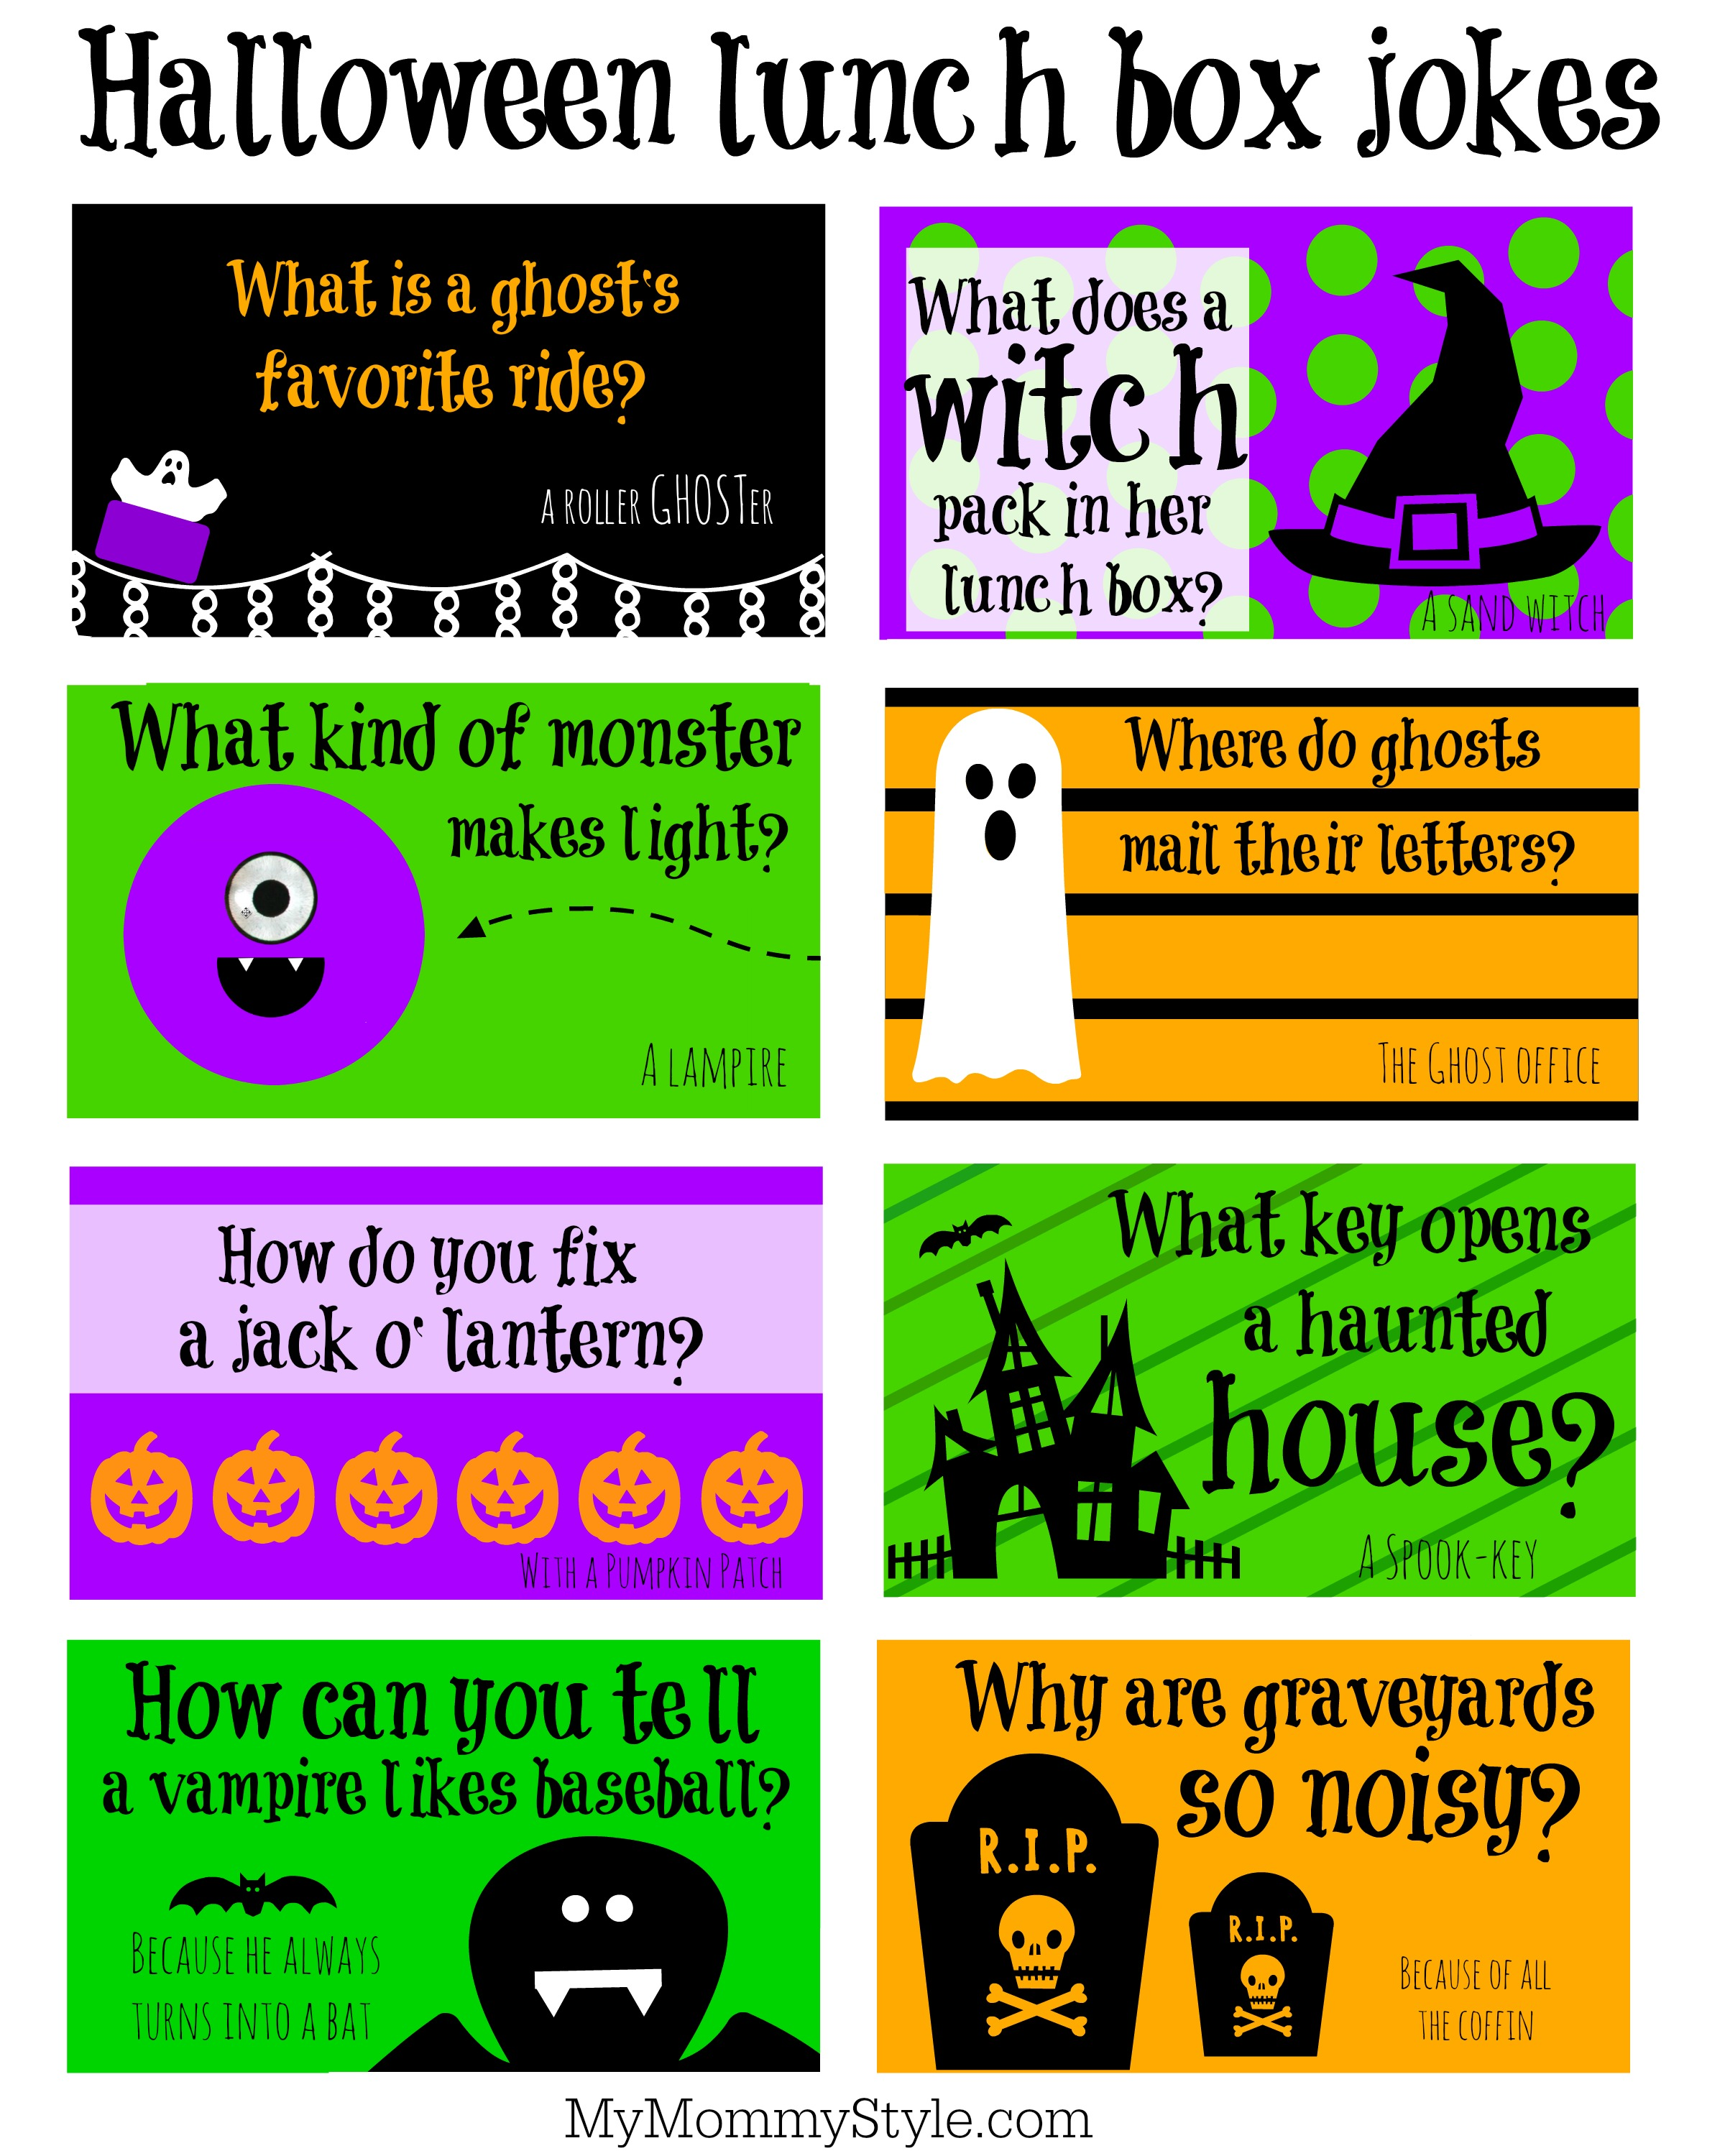 photo regarding Lunch Box Jokes Printable titled Halloween Lunchbox jokes - My Mommy Structure